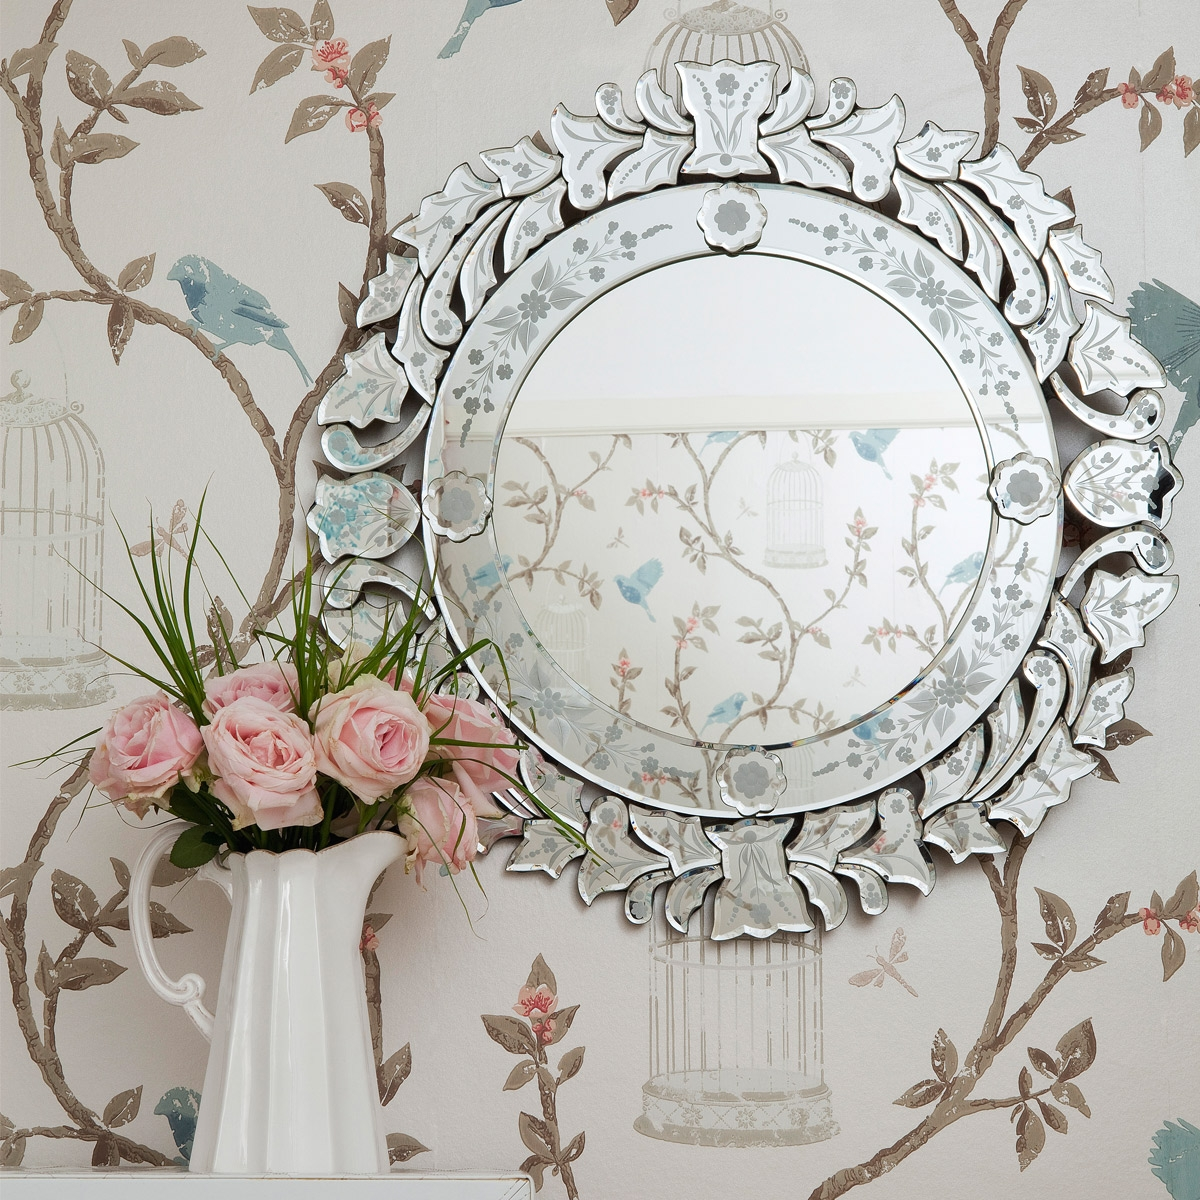 Fancy Mirrors Full Image For Big Fancy Mirror Perfect Frames For Inside Fancy Mirrors For Sale (Image 8 of 14)